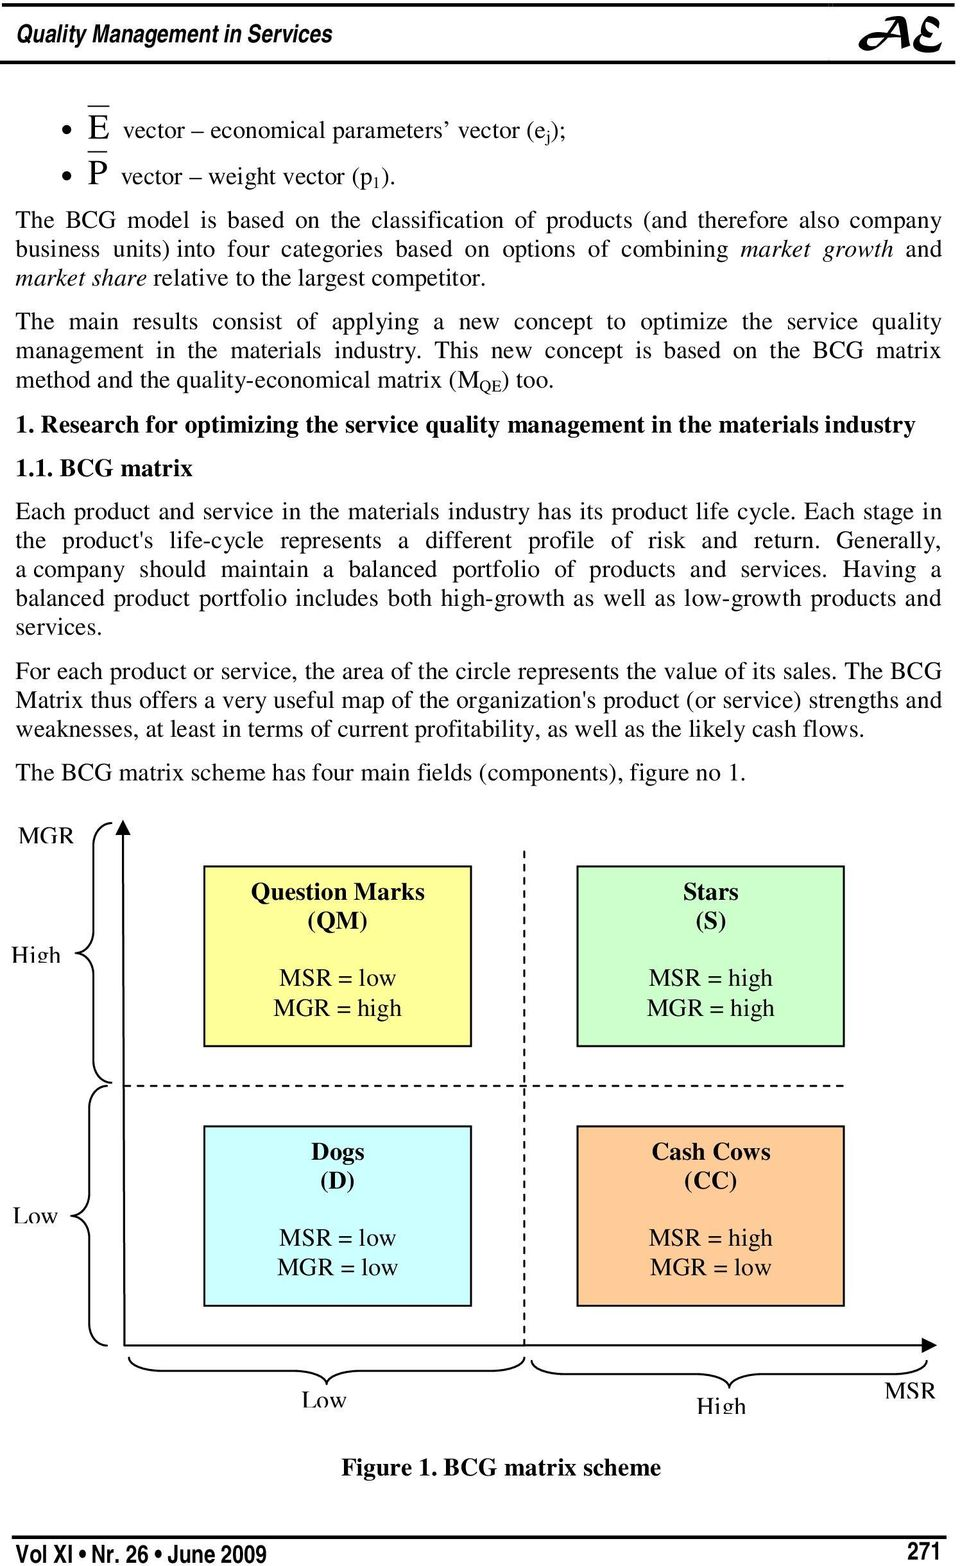 bcg matrix of yahoo The vote to give bcg $6 million was one of five resolutions the nycha board voted on that morning, following votes to approve a half-million-dollar emergency contract for tree removal, a $600,000 commercial lease contract and the transfer of 32,000 square feet of land and 160,000 square feet of air rights in east harlem to a real estate consortium building a charter school, community facility.